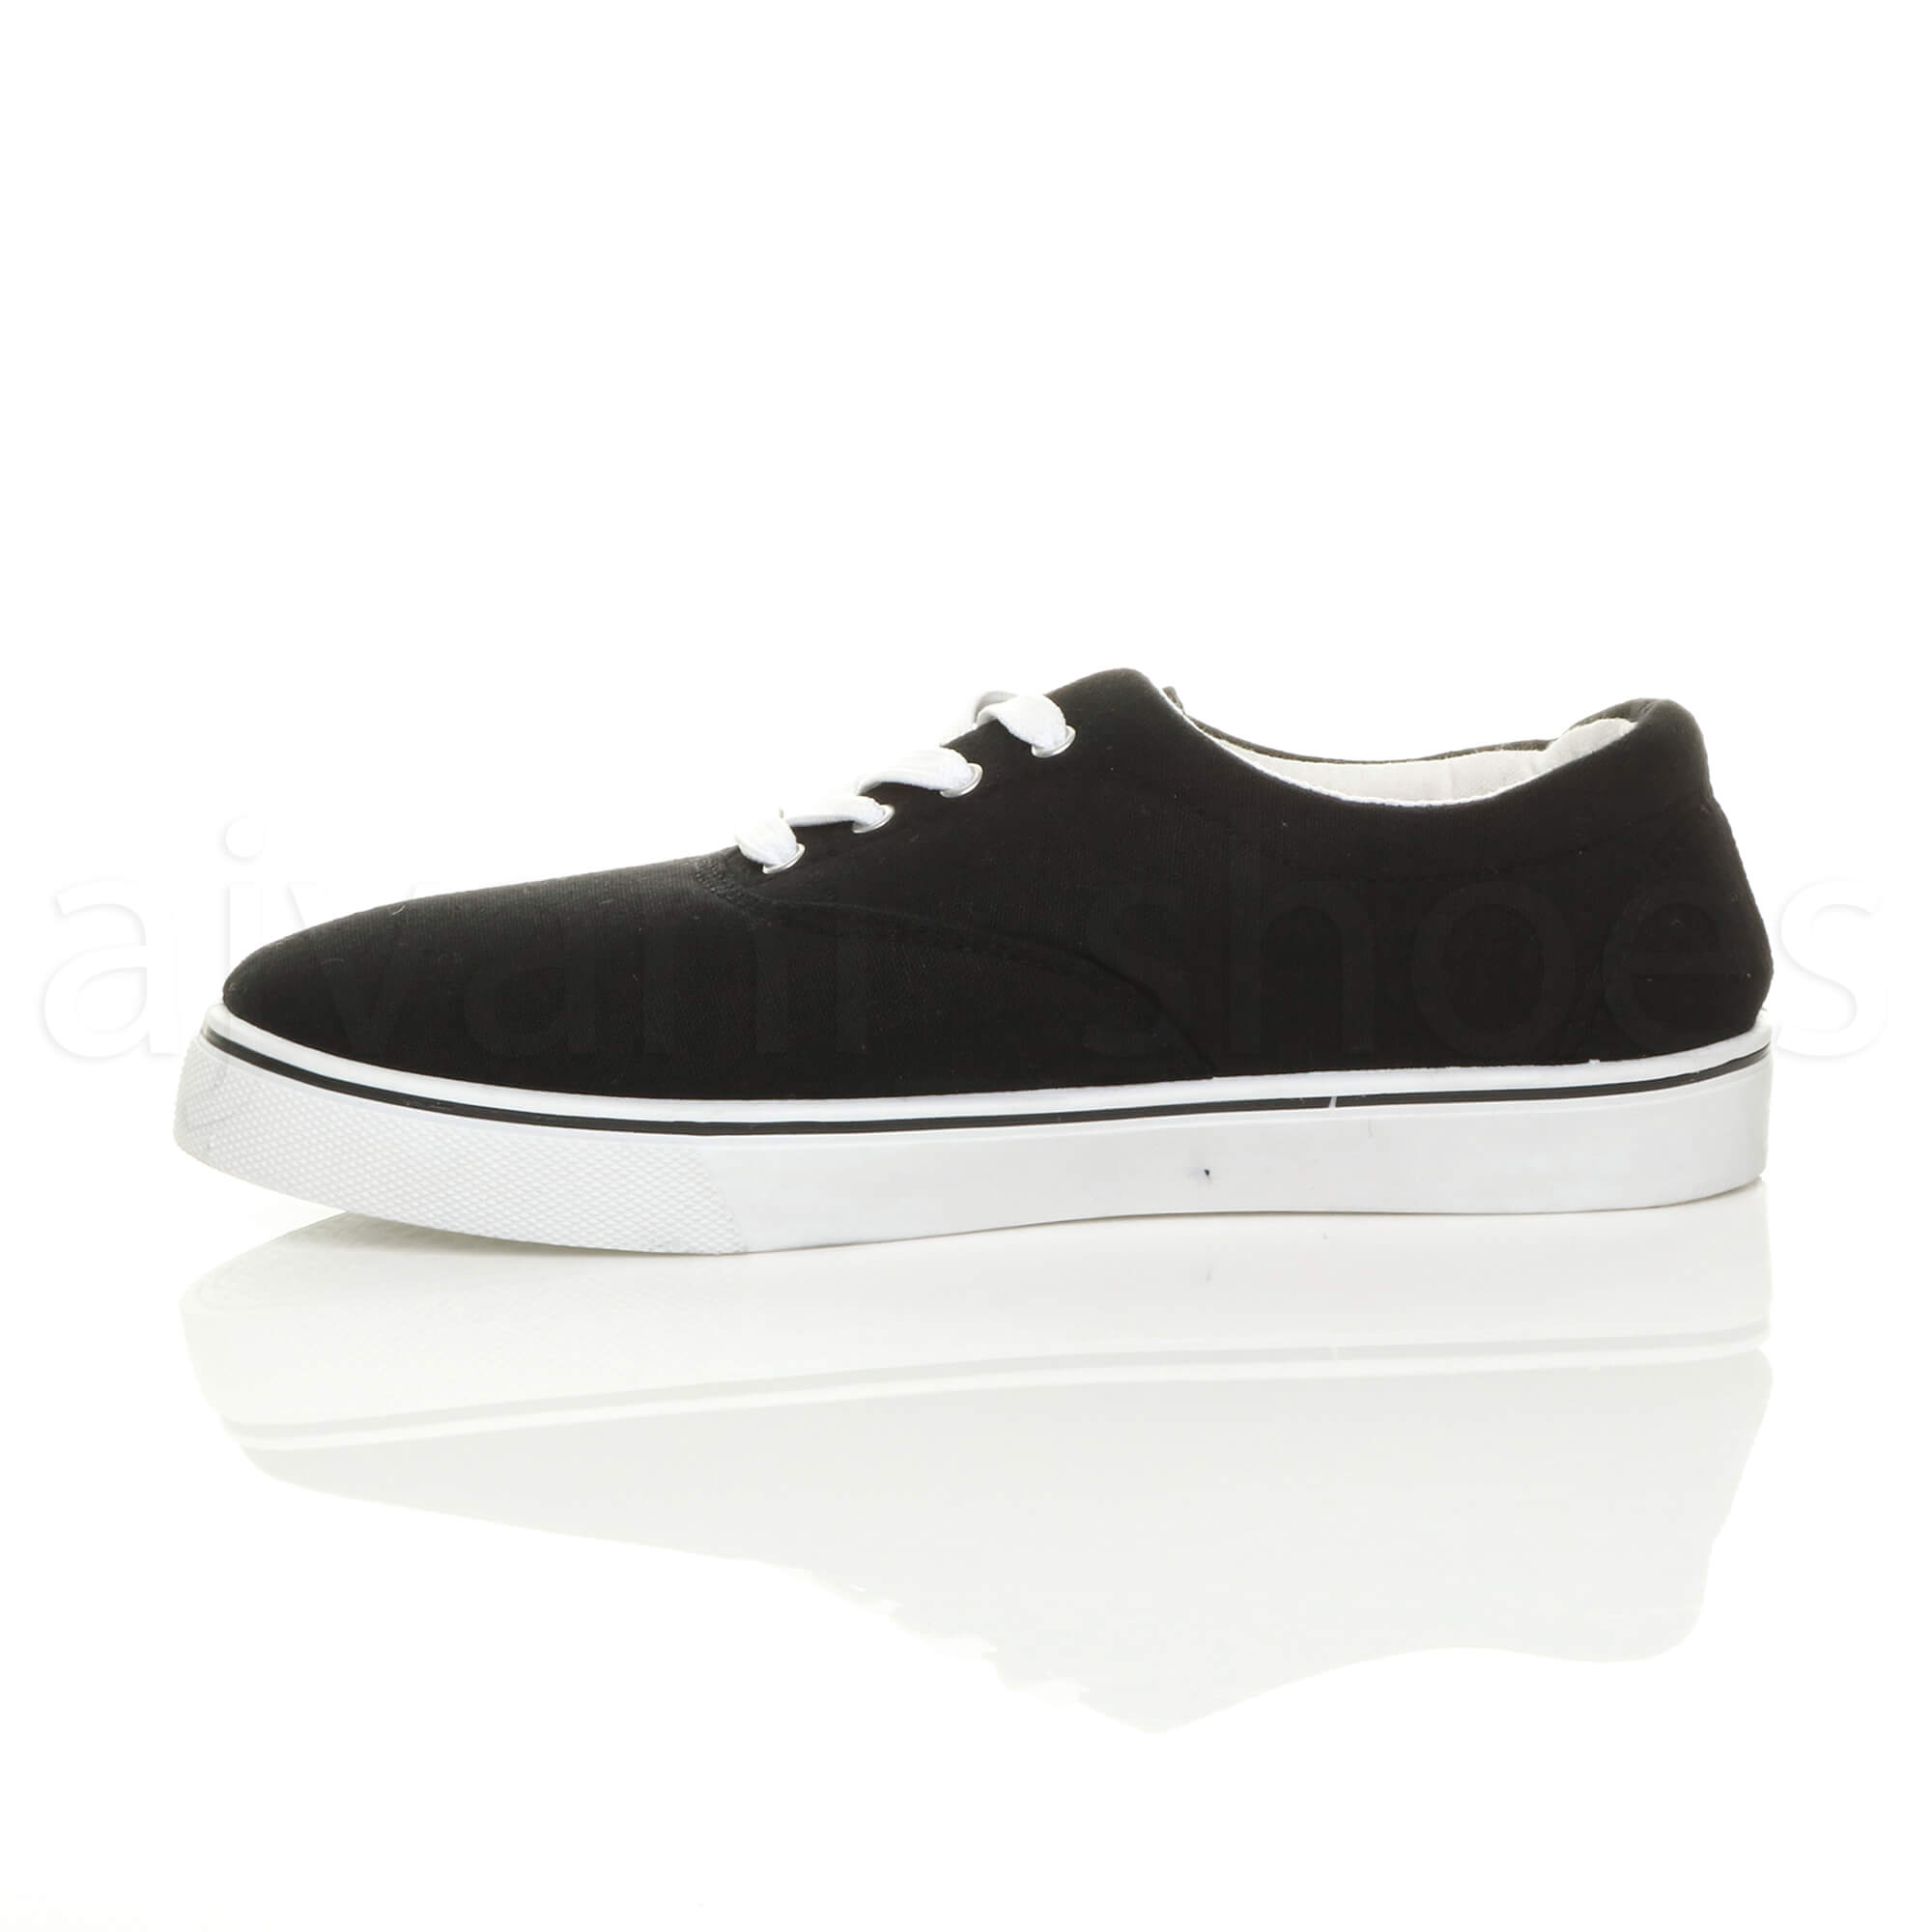 MENS-CANVAS-CASUAL-TRAINERS-PLIMSOLES-PLIMSOLLS-SHOES-LACE-UP-PUMPS-SIZE thumbnail 4